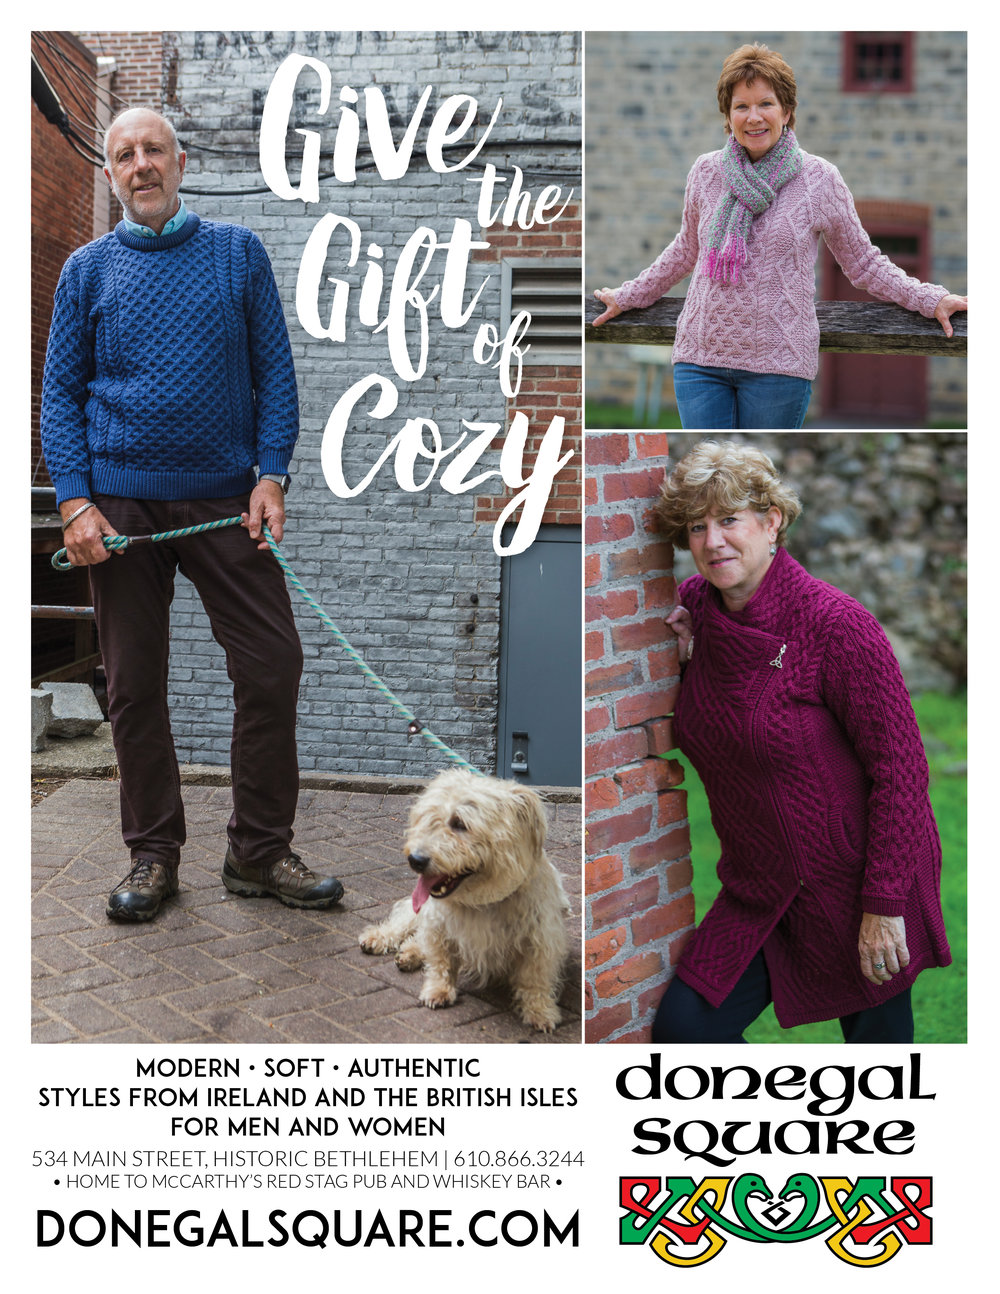 GIVE THE GIFT OF COZY  • FULL  PAGE ADVERTISEMENT   CLIENT: DONEGAL SQUARE • BETHLEHEM, PA BRIEF: Minimal advertisement for promoting the range of Irish sweaters offered by Donegal Square. PLACEMENT: ArtsQuest InQ Members Magazine WORK: Copywriting and layout through Adobe InDesign. Photography by Theresa Cantley Consultant.